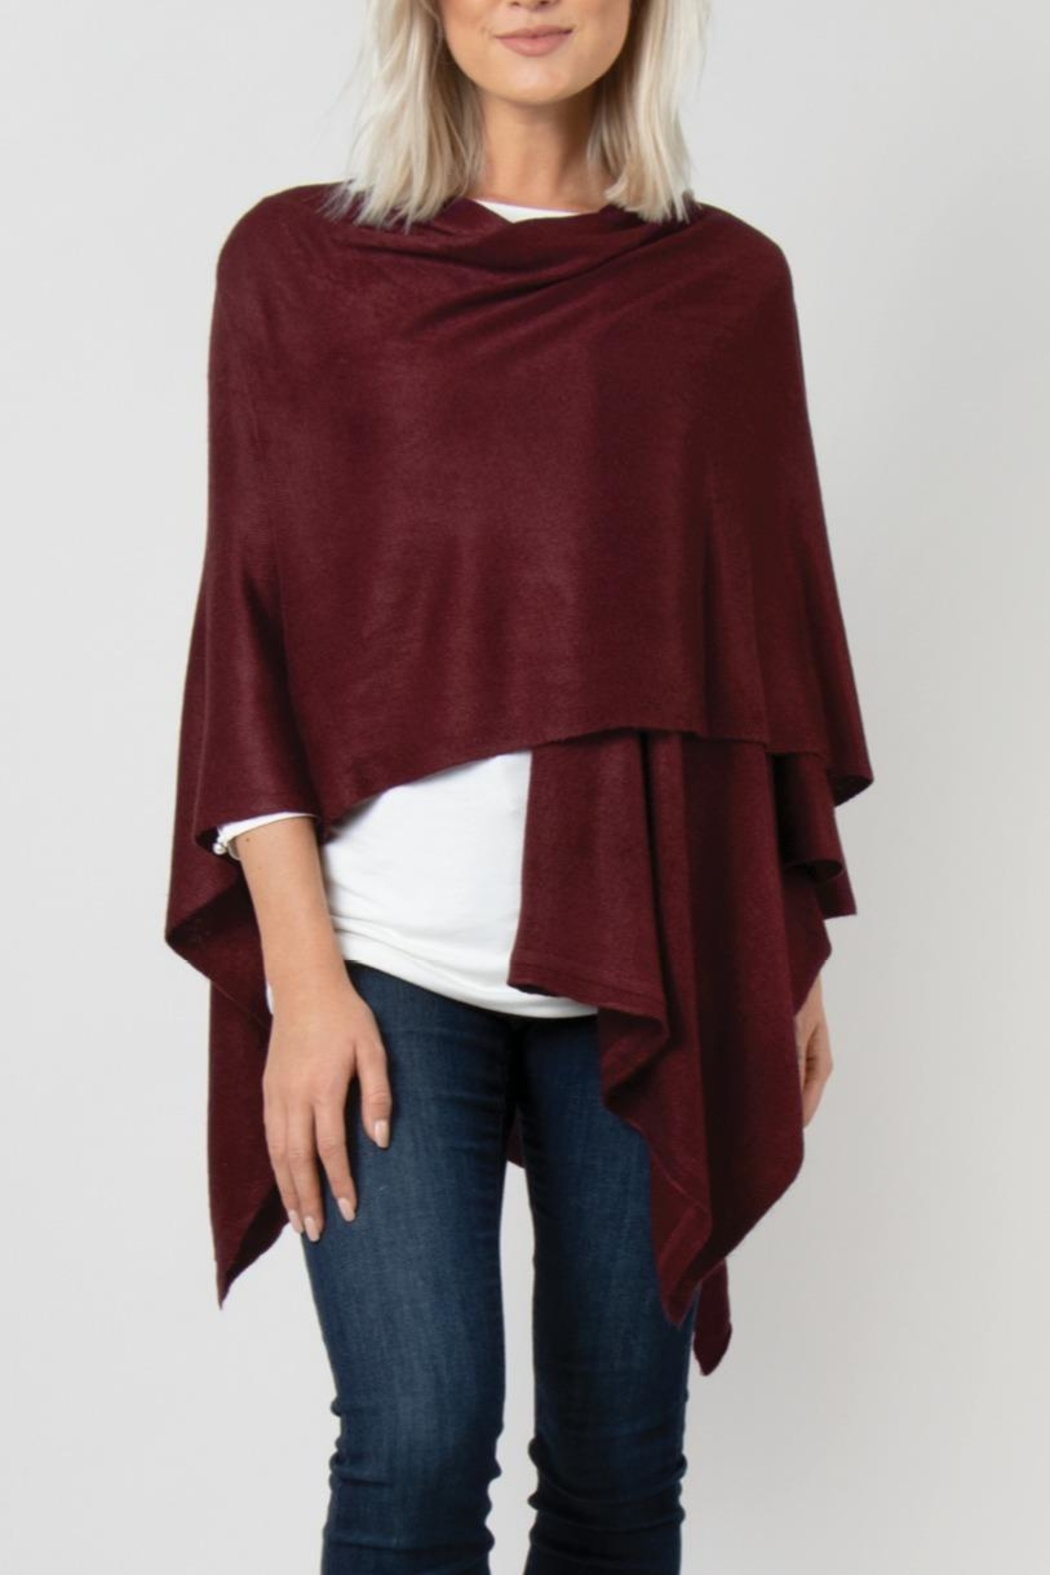 Simply Noelle Bordeaux Cardi Wrap Poncho - Side Cropped Image